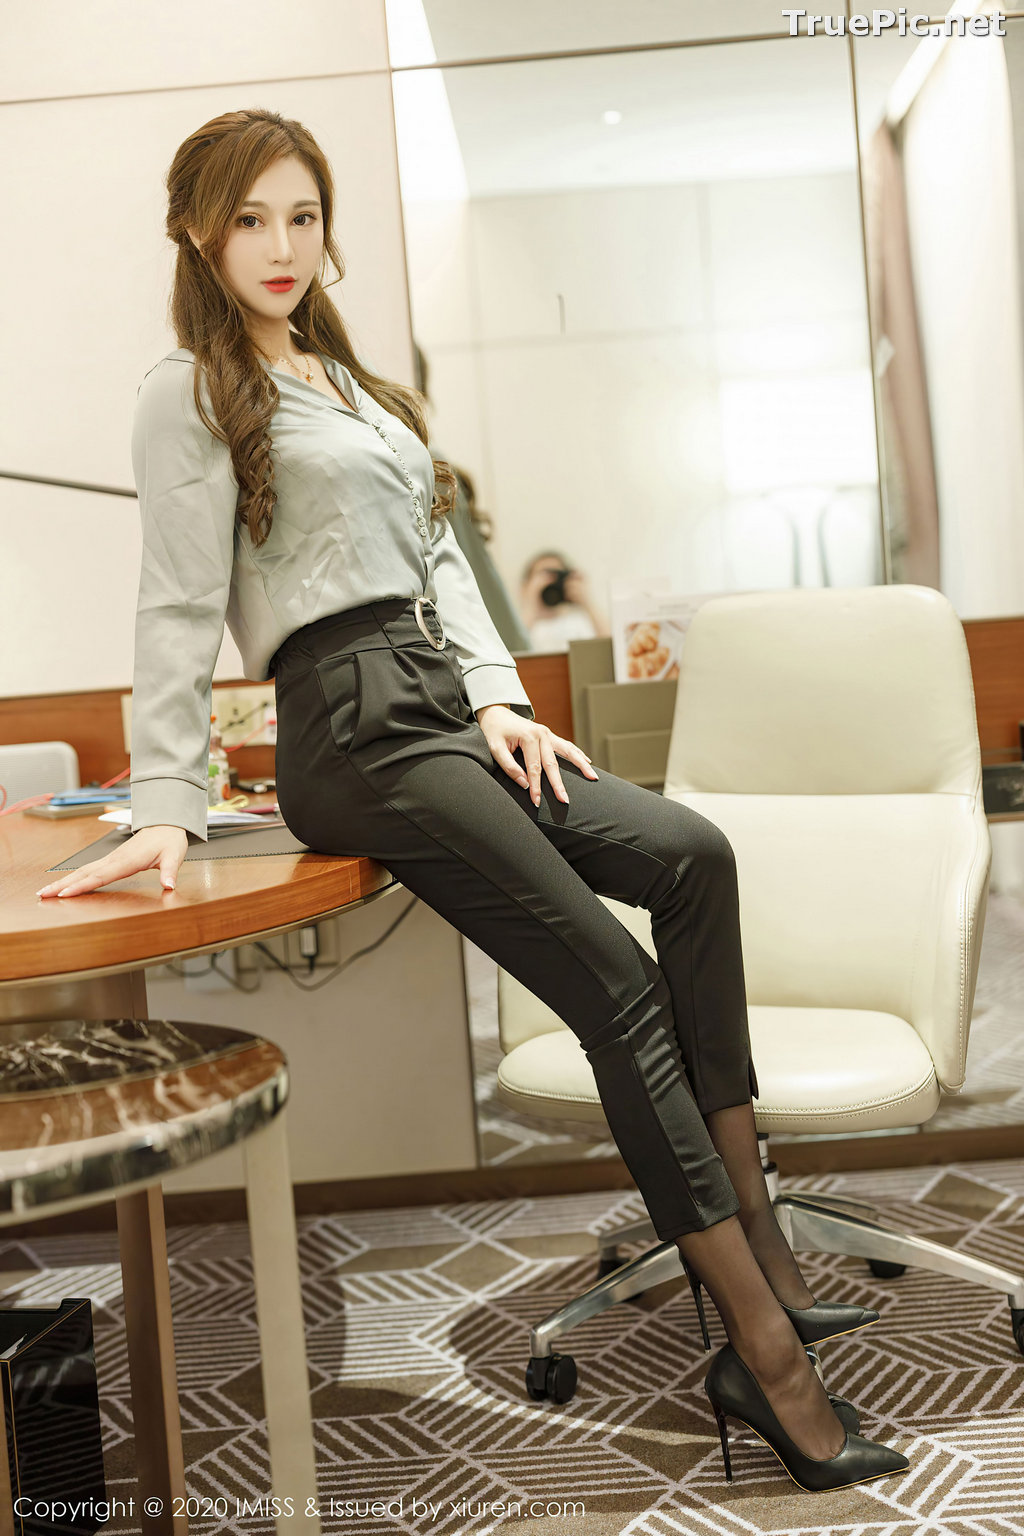 Image IMISS Vol.492 - Chinese Model - Lavinia肉肉 - Long Legs Office Girl - TruePic.net - Picture-7